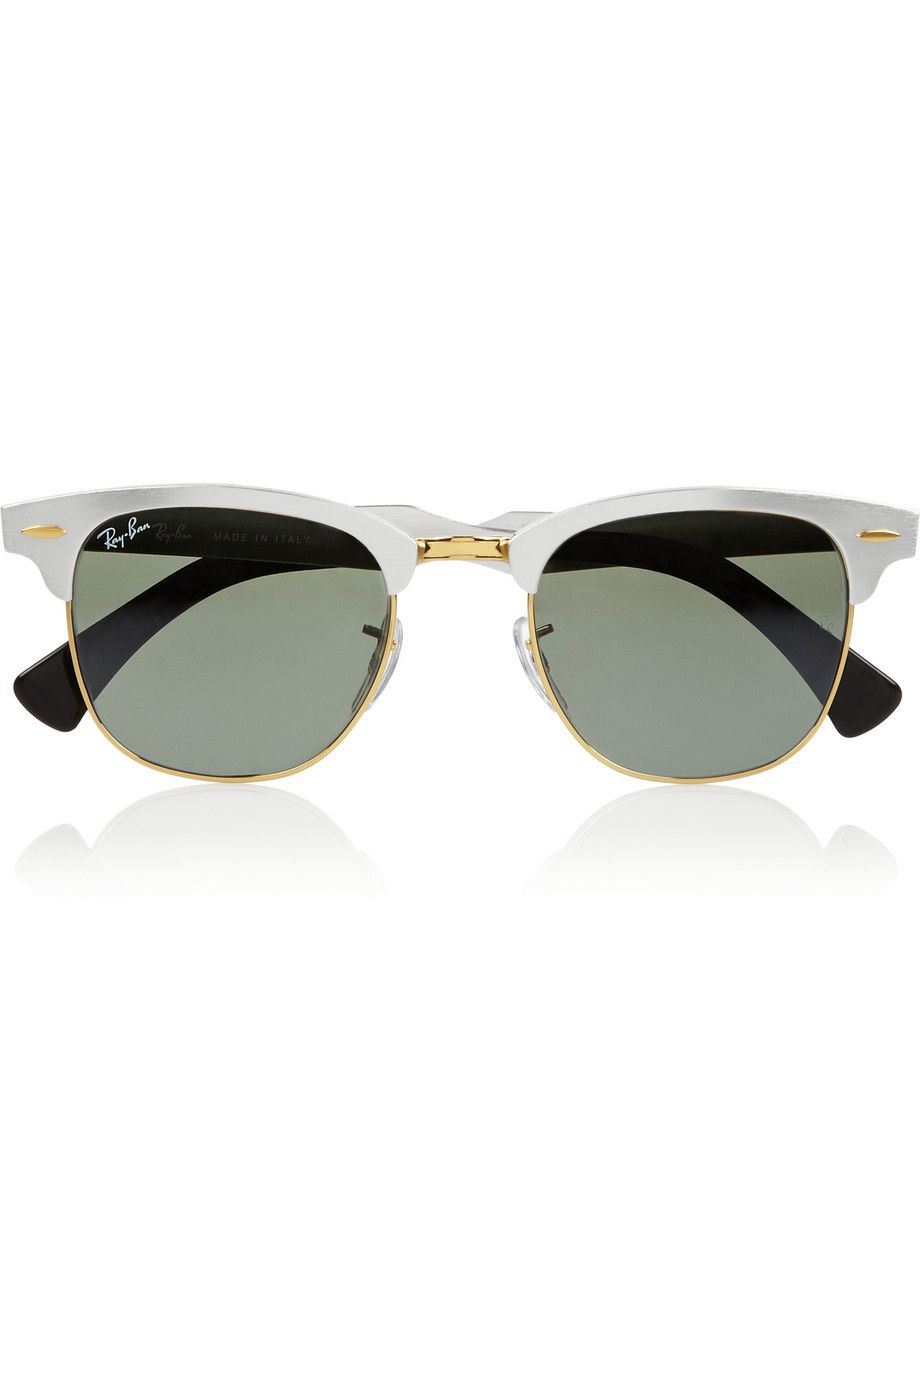 Ray-Ban   Clubmaster D-frame mirrored aluminum sunglasses    NET-A-PORTER.COM    205   These ooze Apple aluminum appeal. 52c544ed6e15